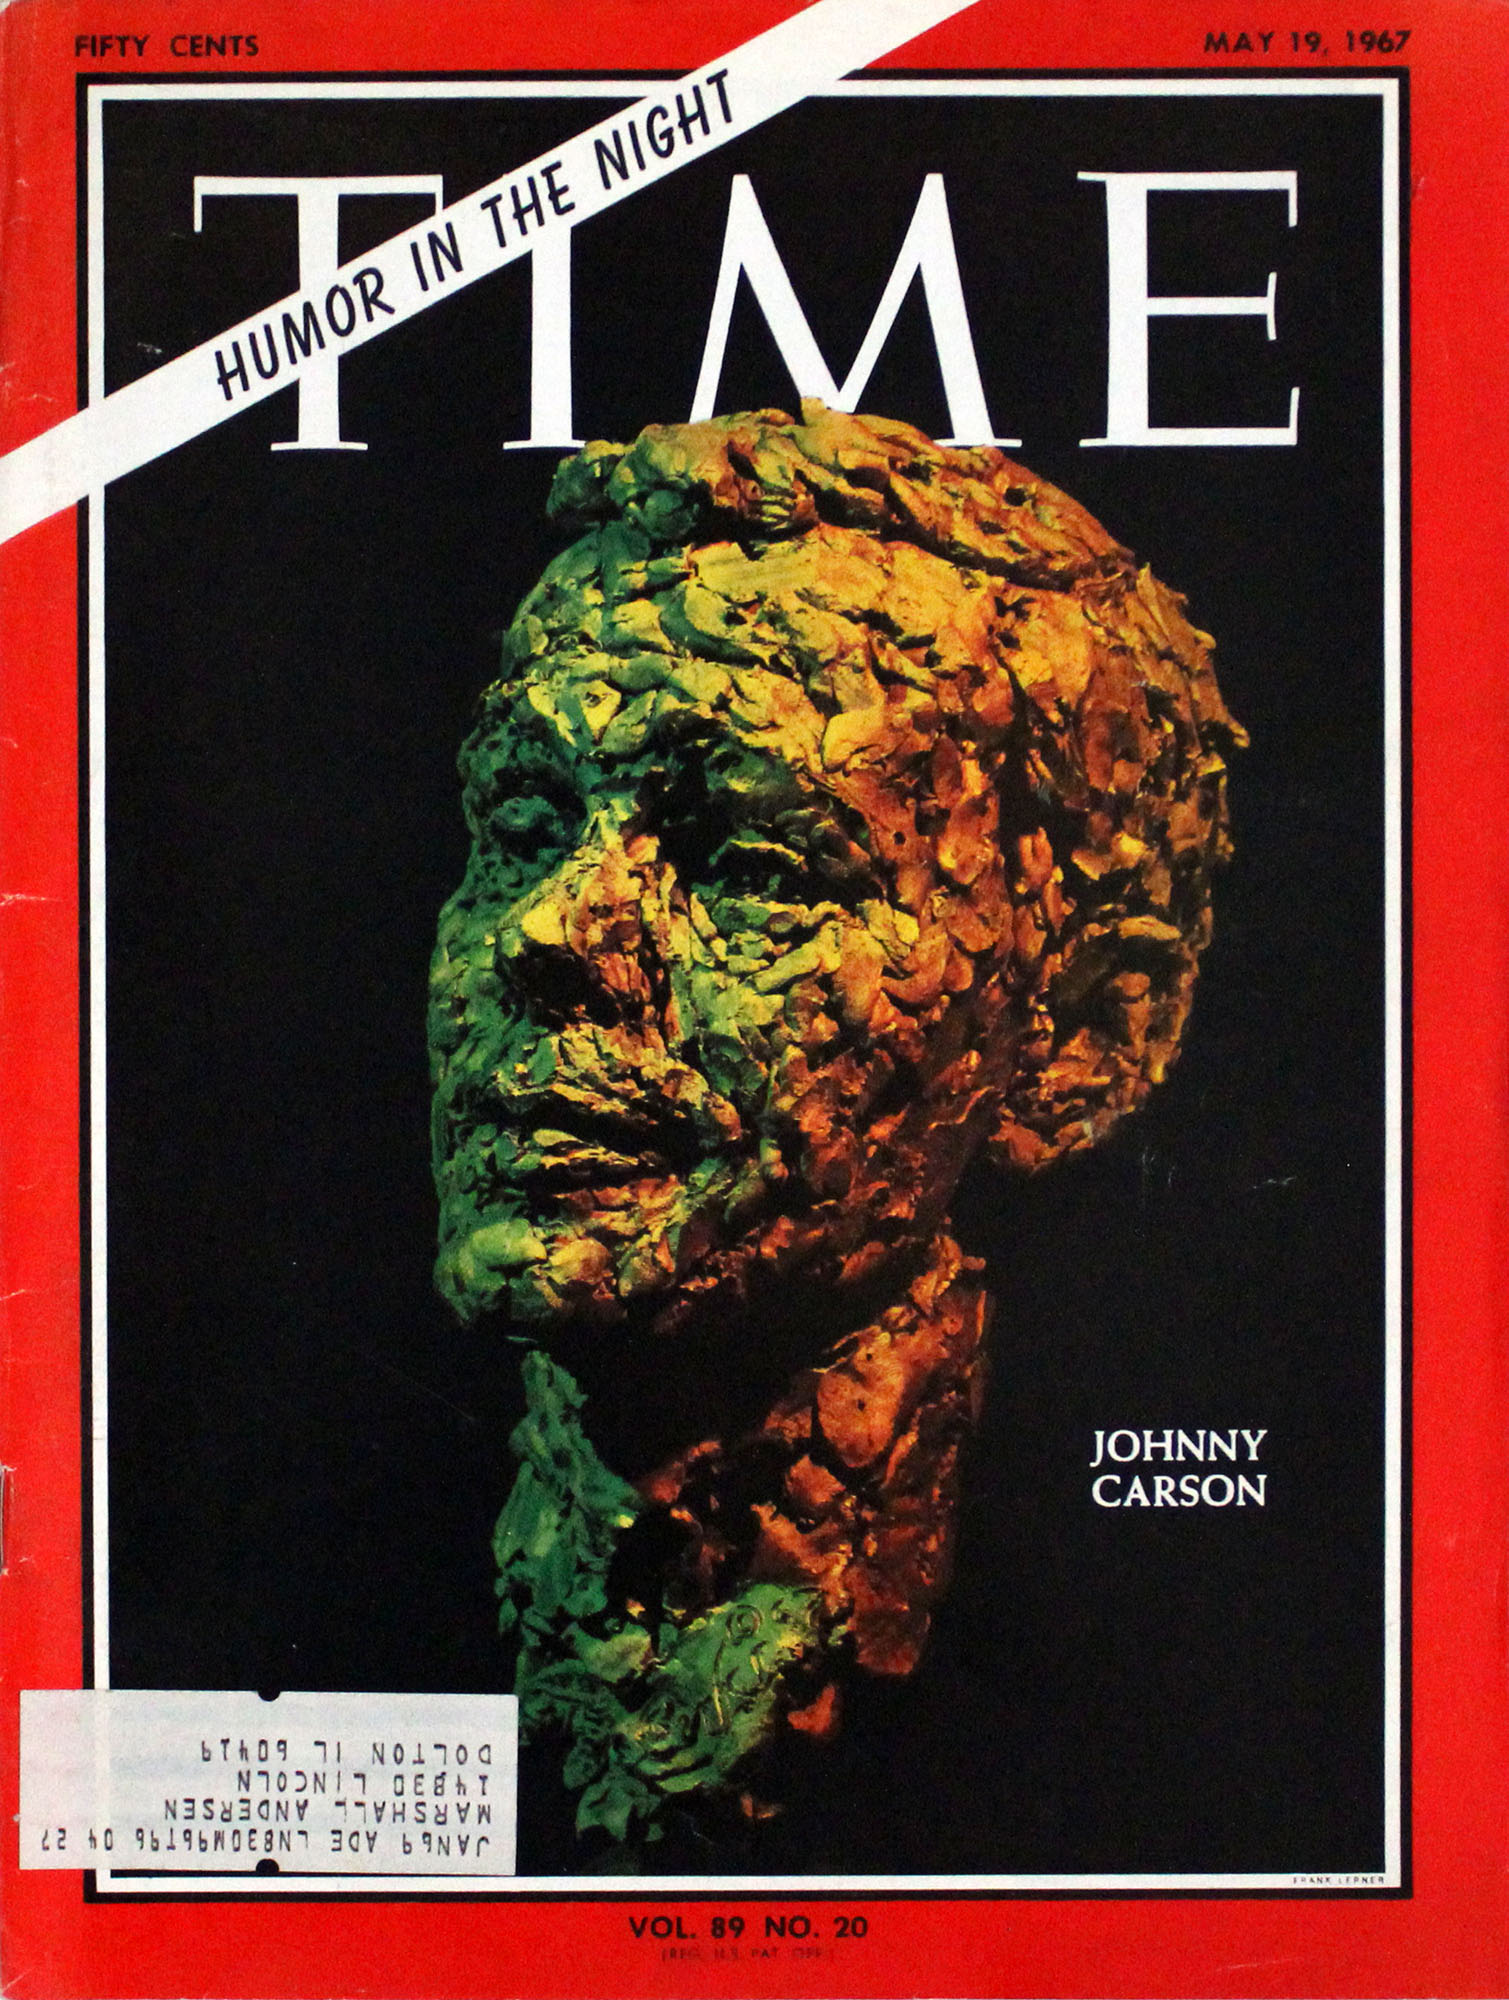 Time Magazine May 19, 1967